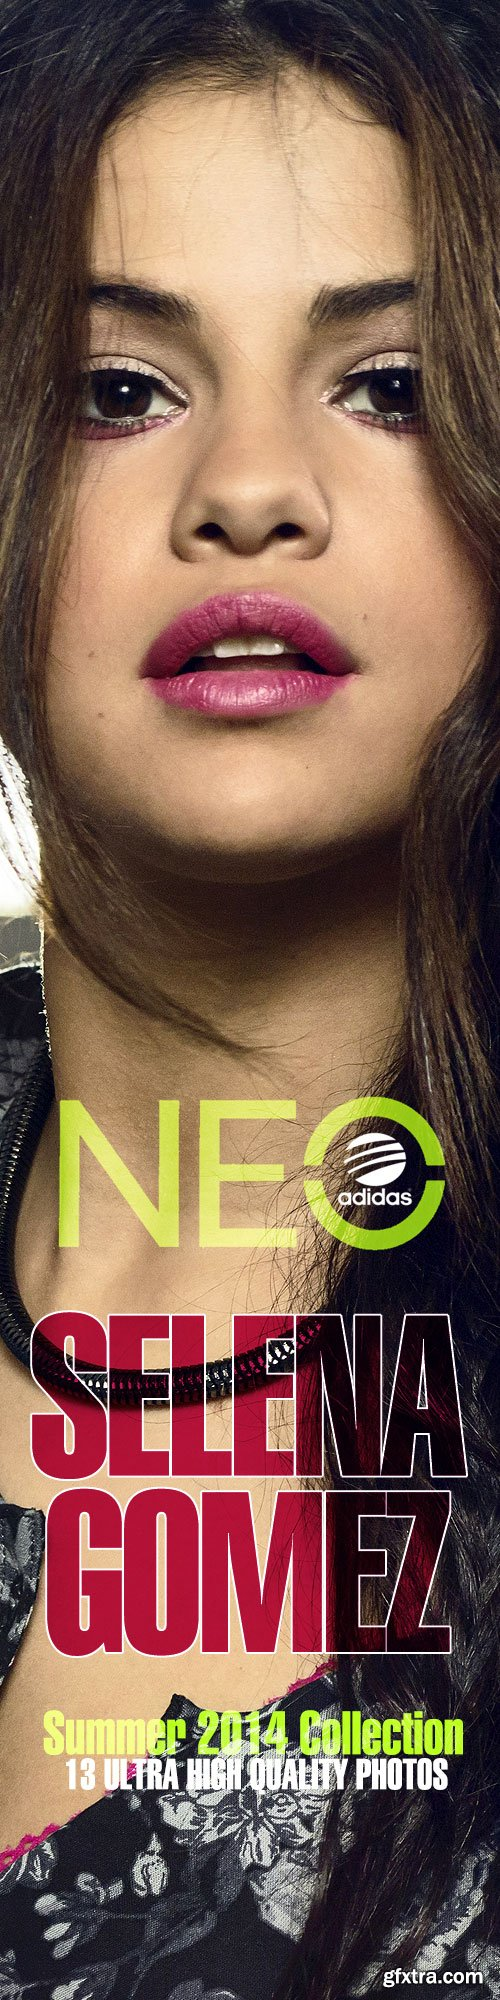 Selena Gomez - Adidas NEO Summer 2014 Collection AD Shoot